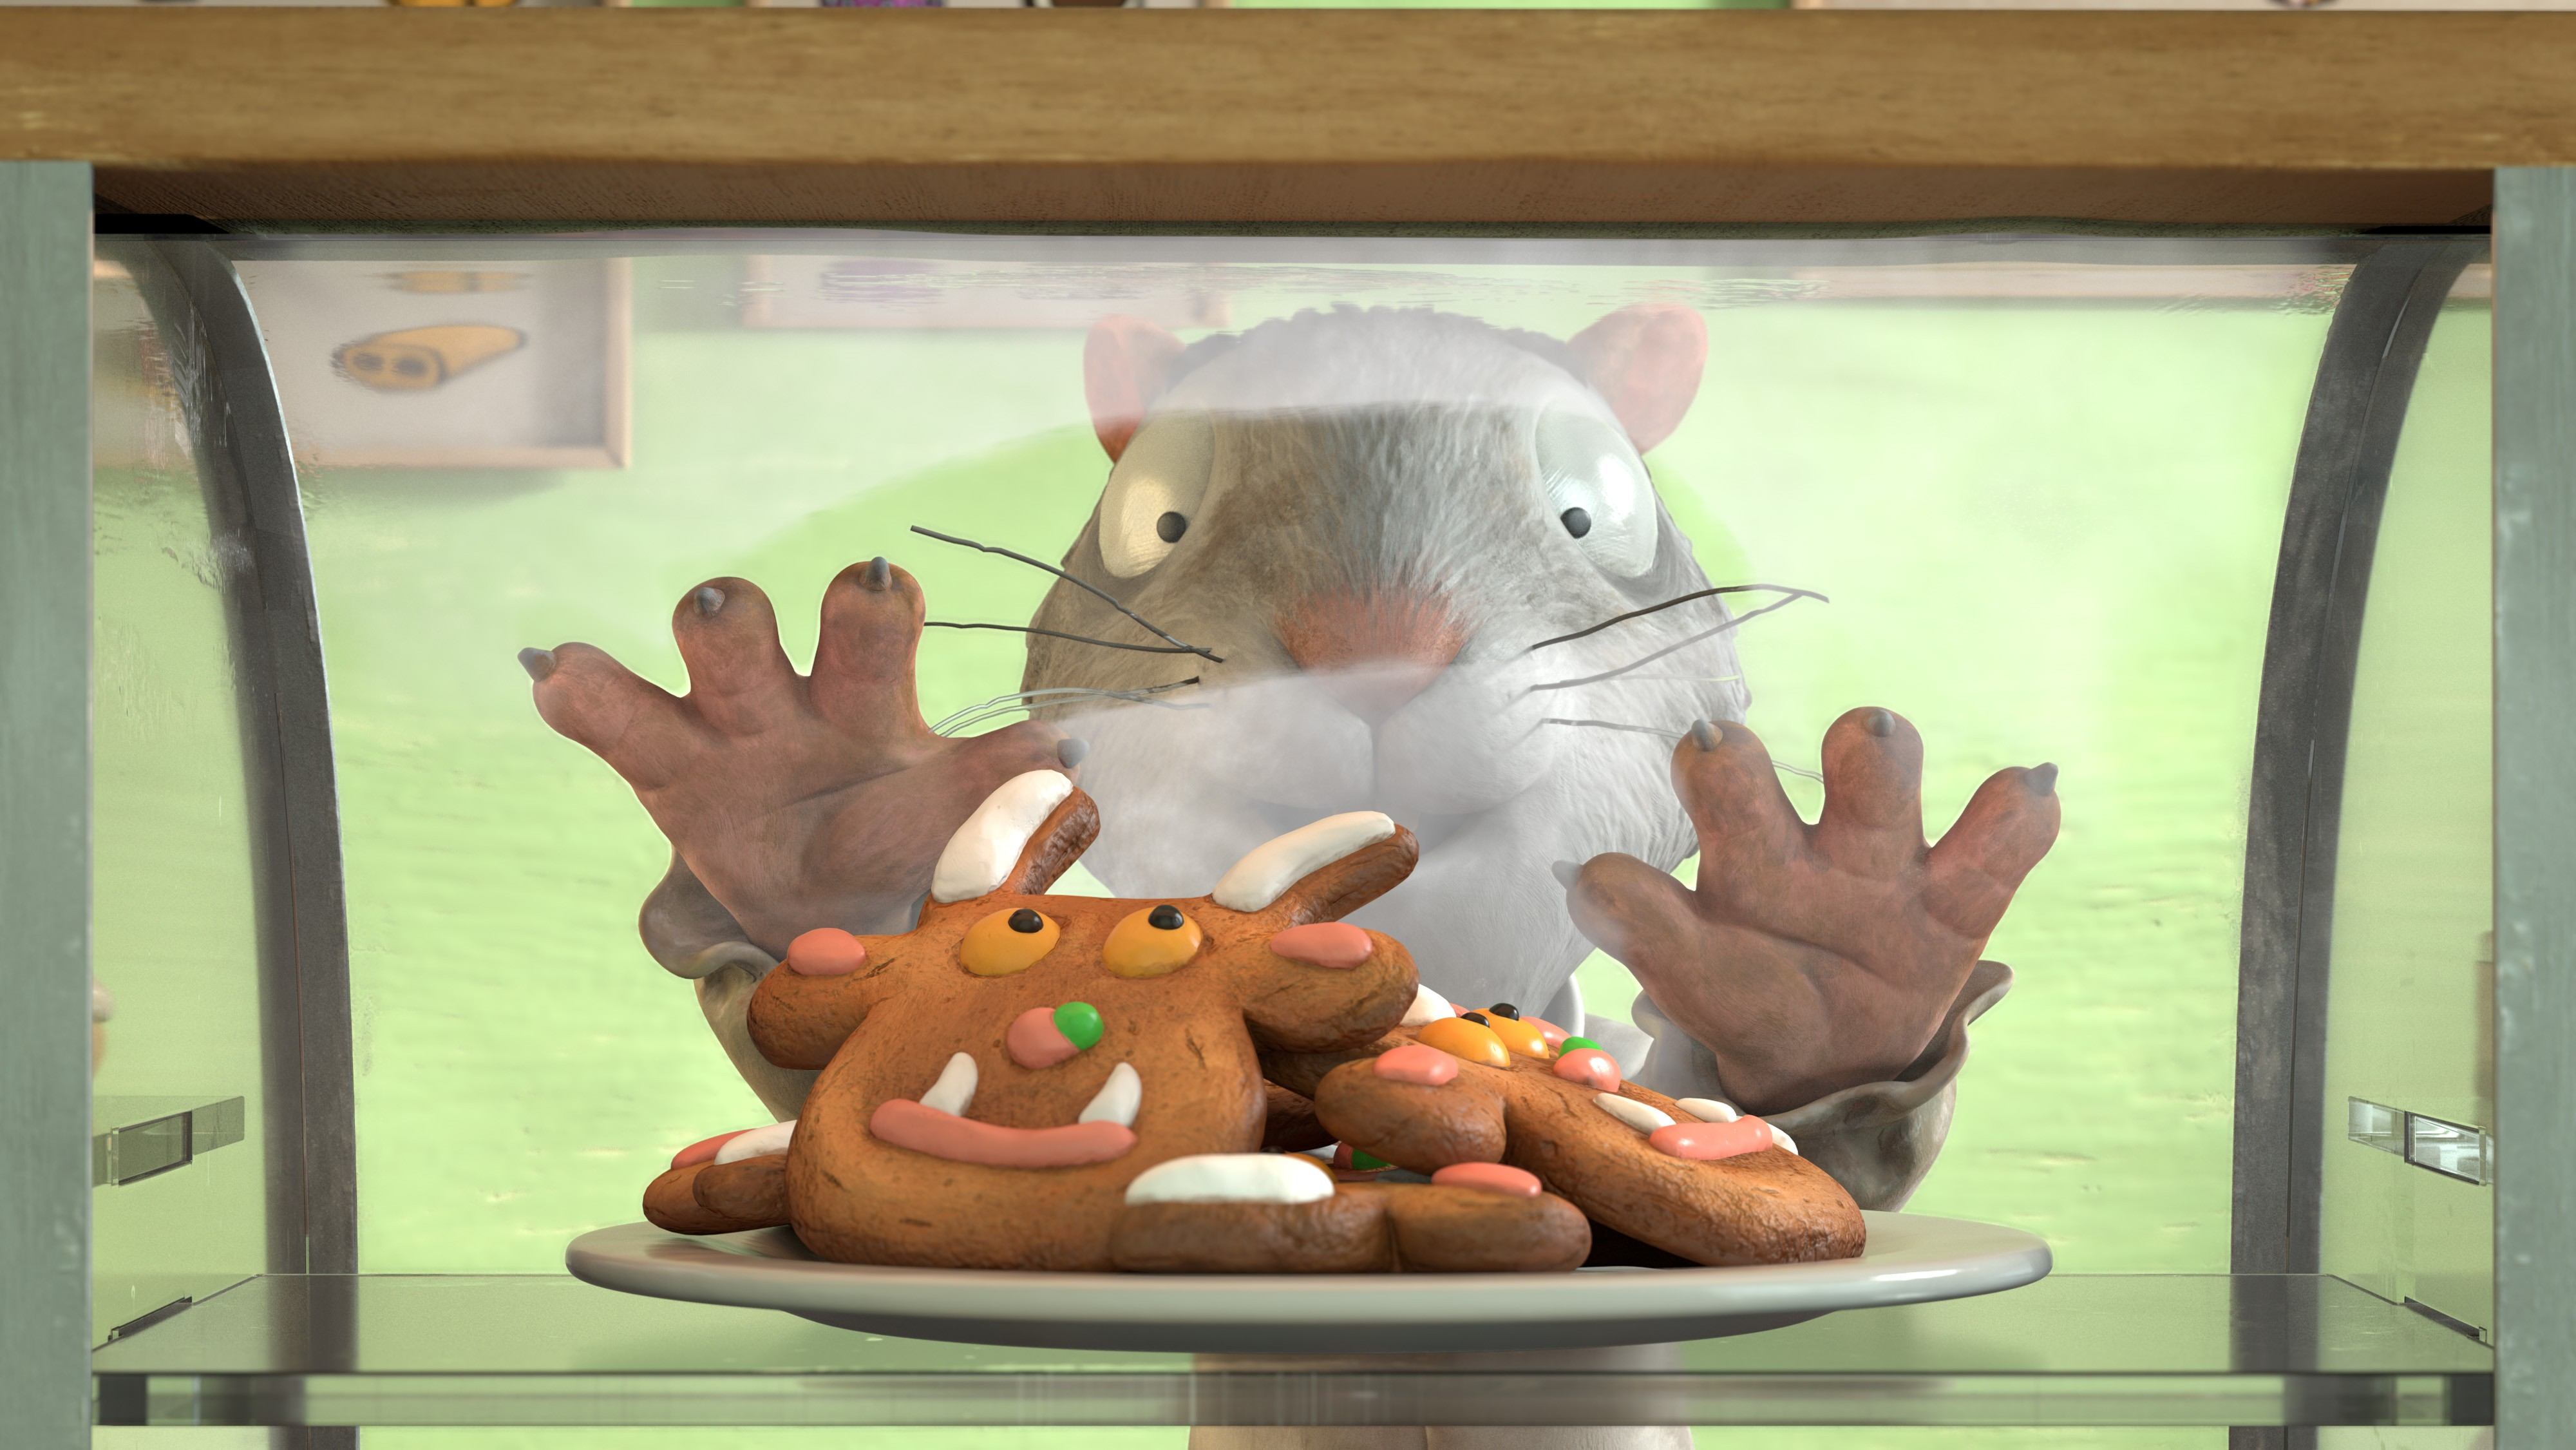 Programme Name: The Highway Rat - TX: n/a - Episode: The Highway Rat (No. n/a) - Picture Shows: Rat with Gruffalo biscuits  - (C) Orange Eyes Ltd  - Photographer: Magic Light Pictures